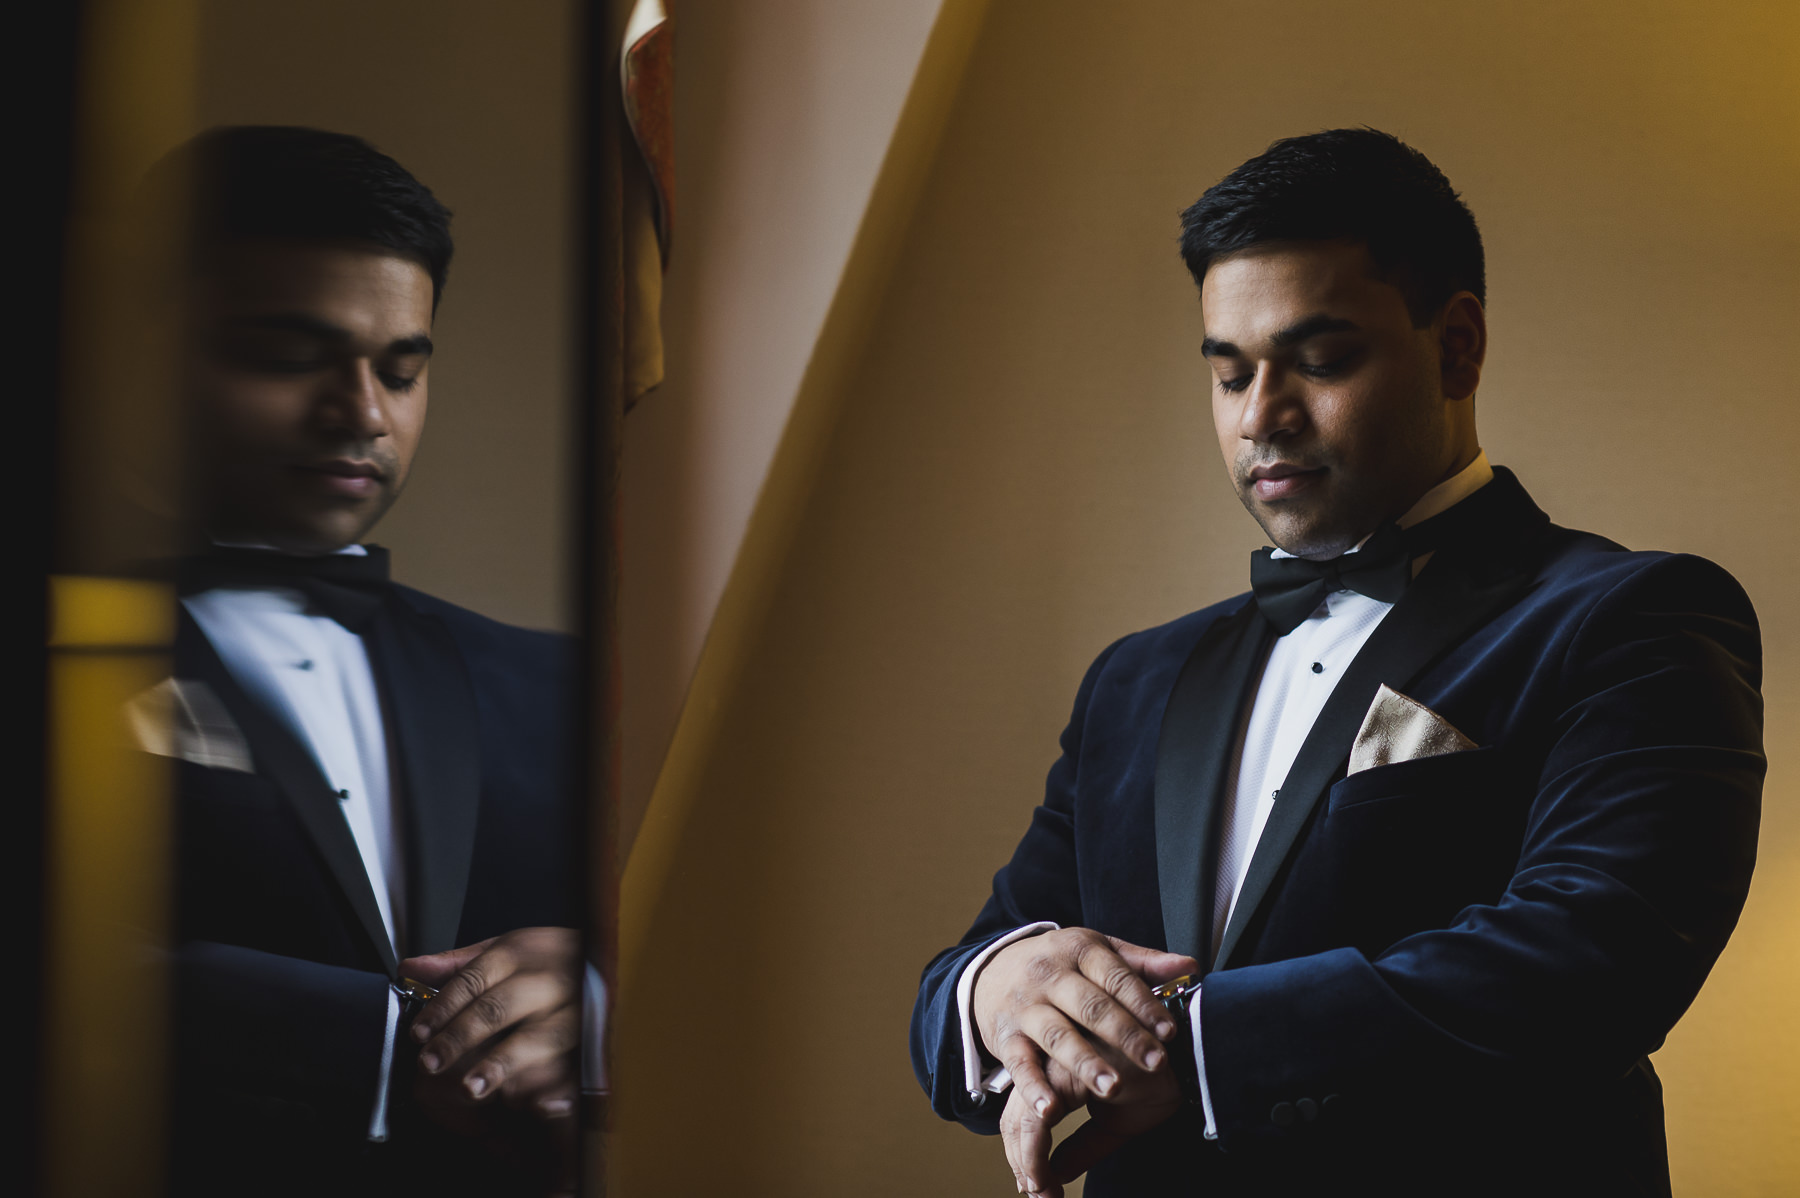 Groom Getting Ready for Reception at Millenium Mayfair Hotel Wedding Photography